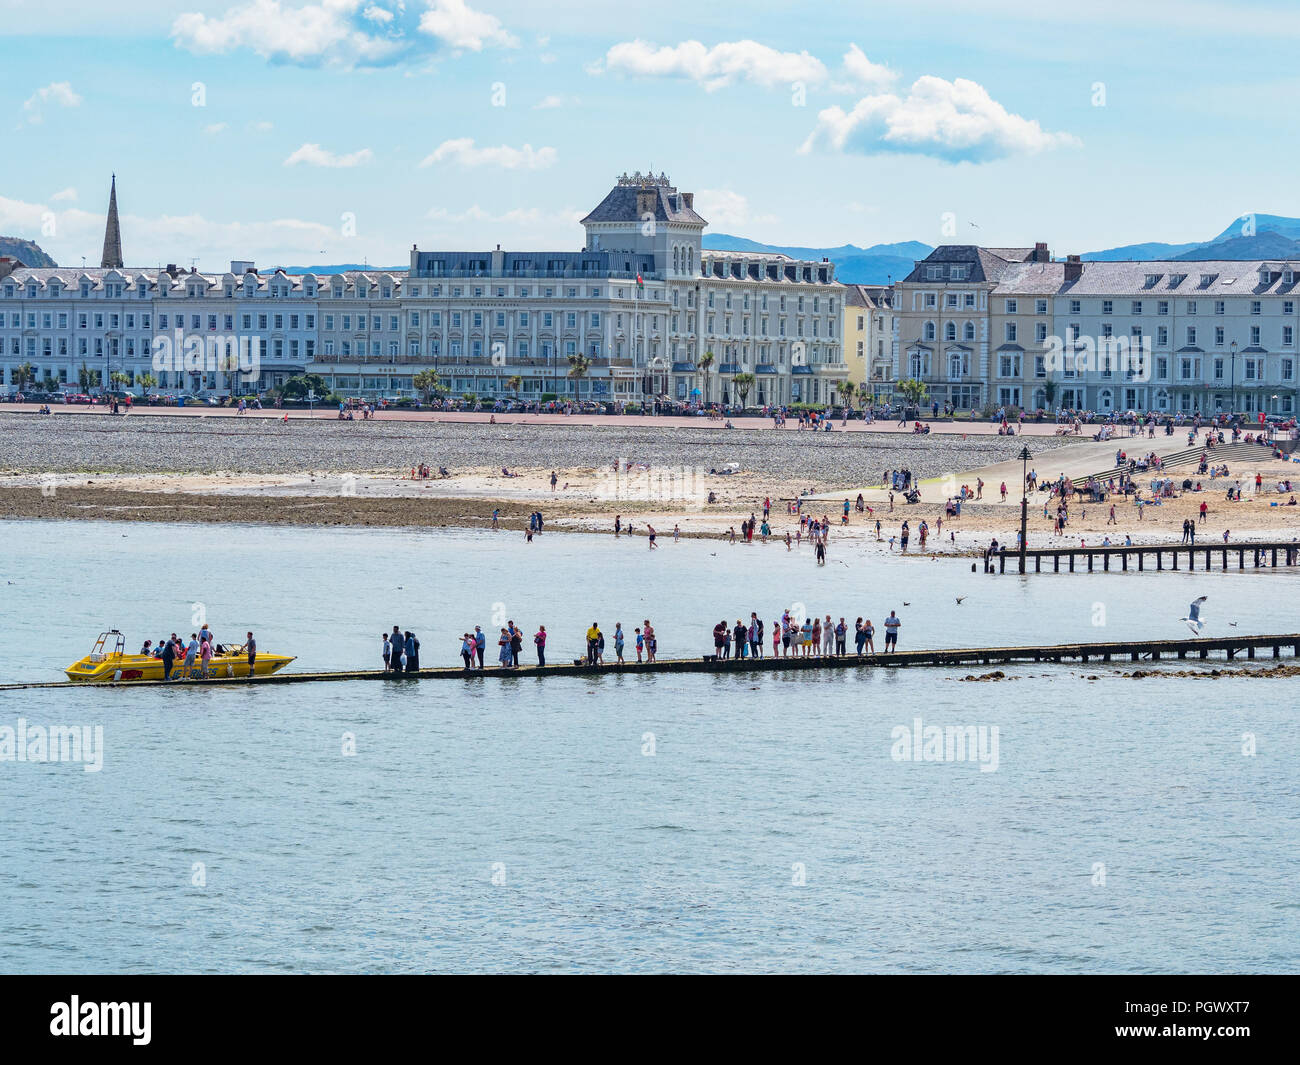 25 July 2018: Llandudno, Conwy, UK - A line of people queuing for boat trips on the boardwalk at Llandudno beach on a warm day during the July heatwav - Stock Image